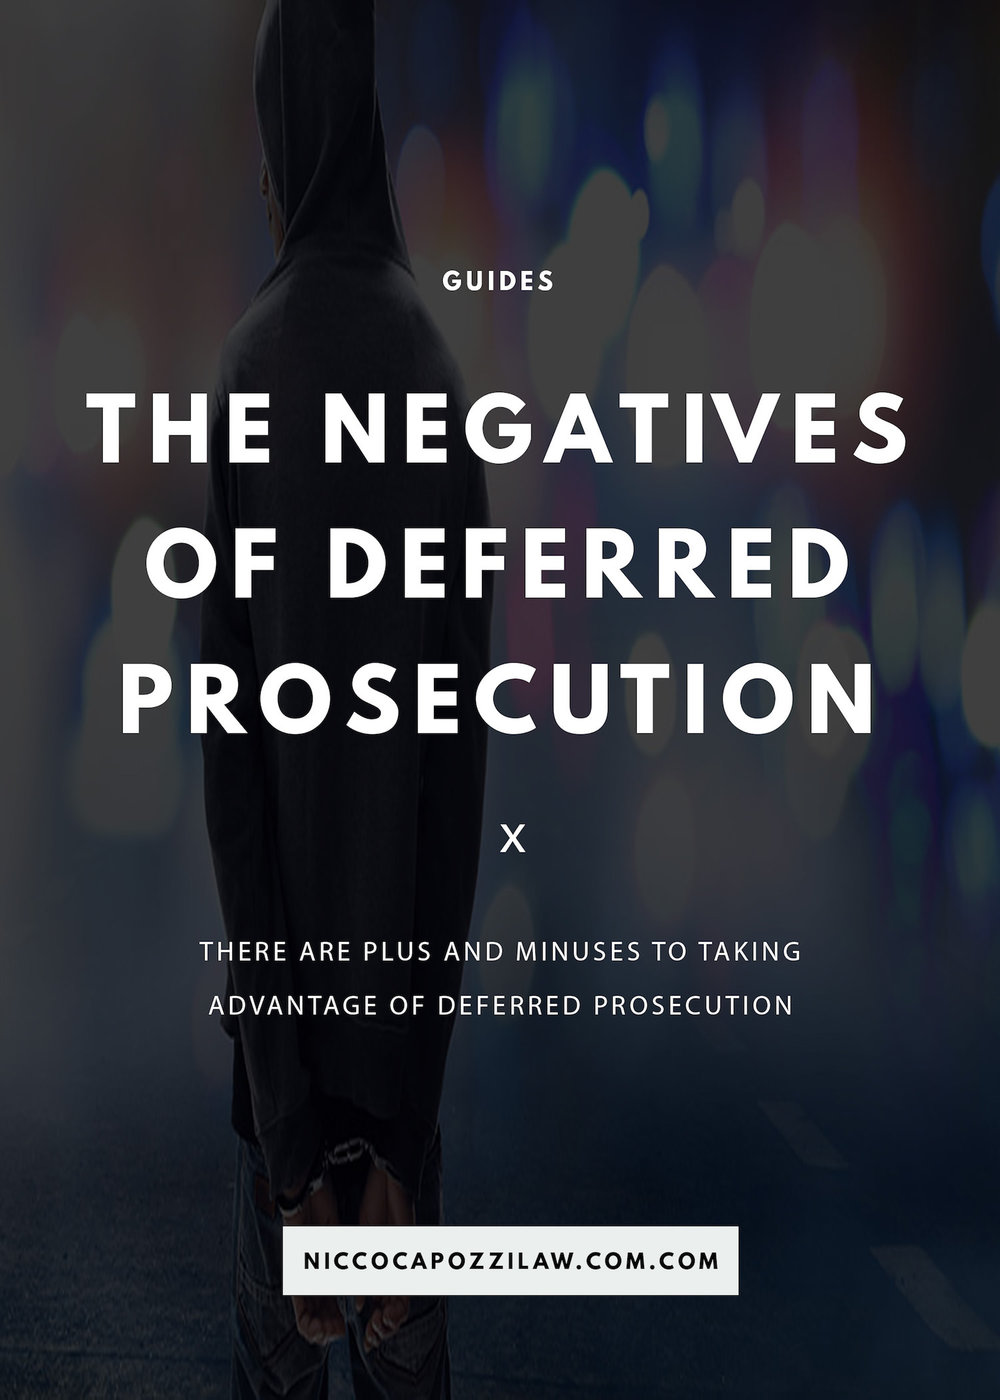 The negative effects of deferred prosecution.jpg